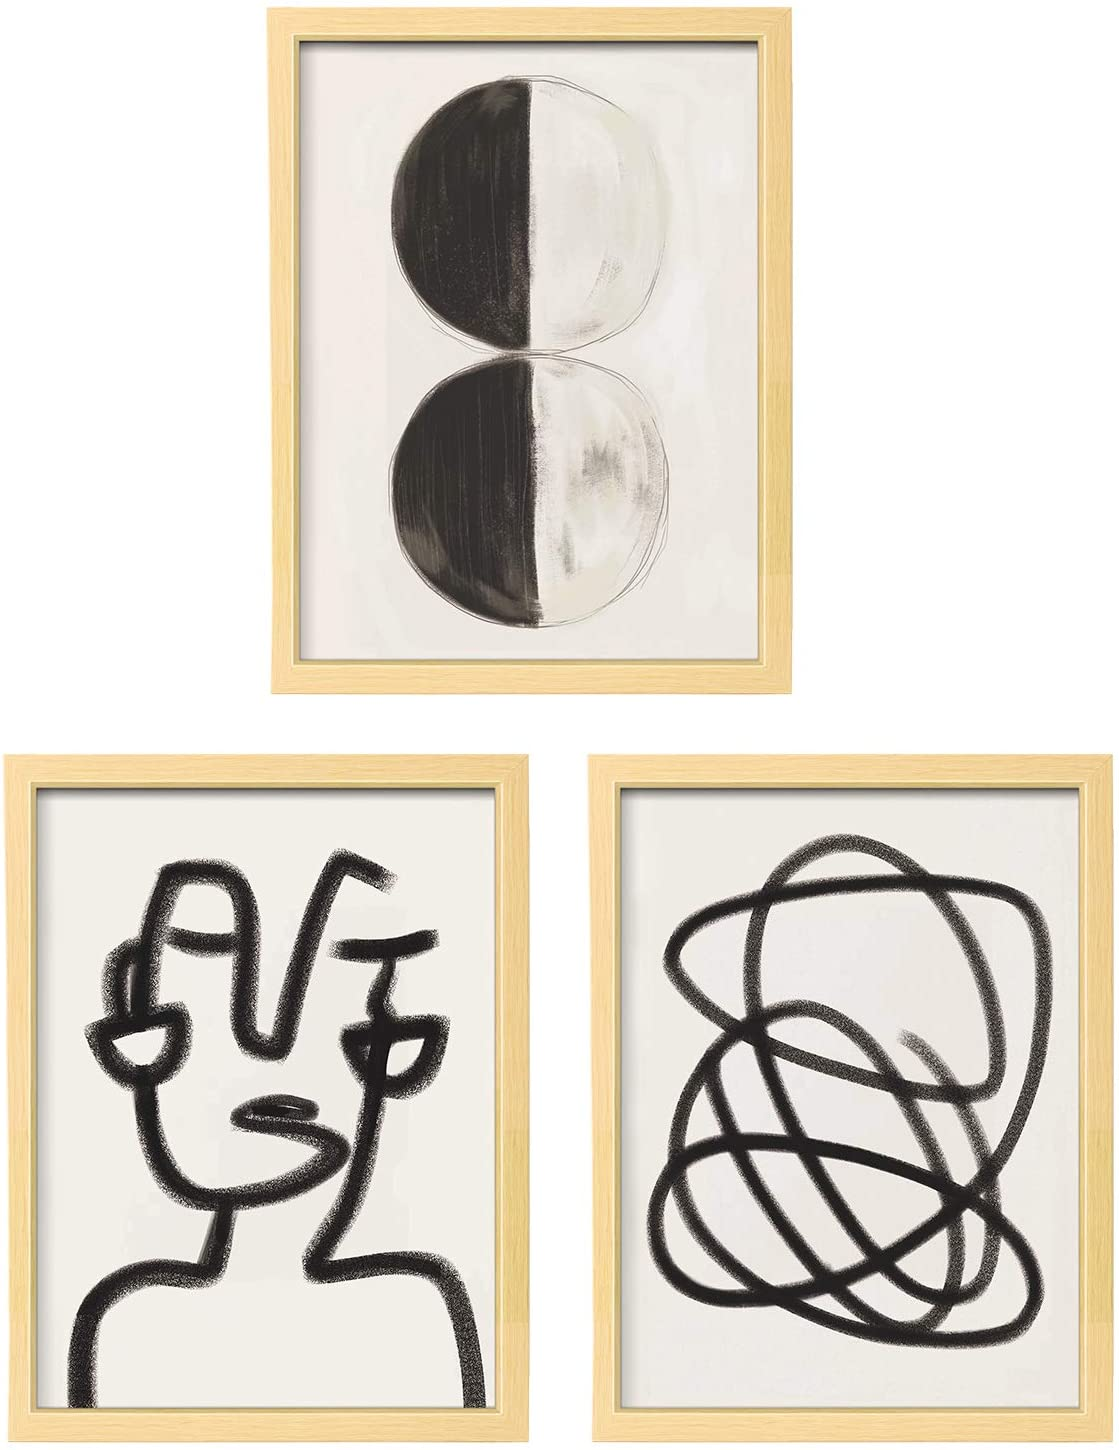 ArtbyHannah 3 Pack 12x16 Inch Framed Minimalist Line Abstract Wall Art Picture Frame Collage Set with Modern Decorative Poster Art Print Artwork for Home Bedroom Decoration